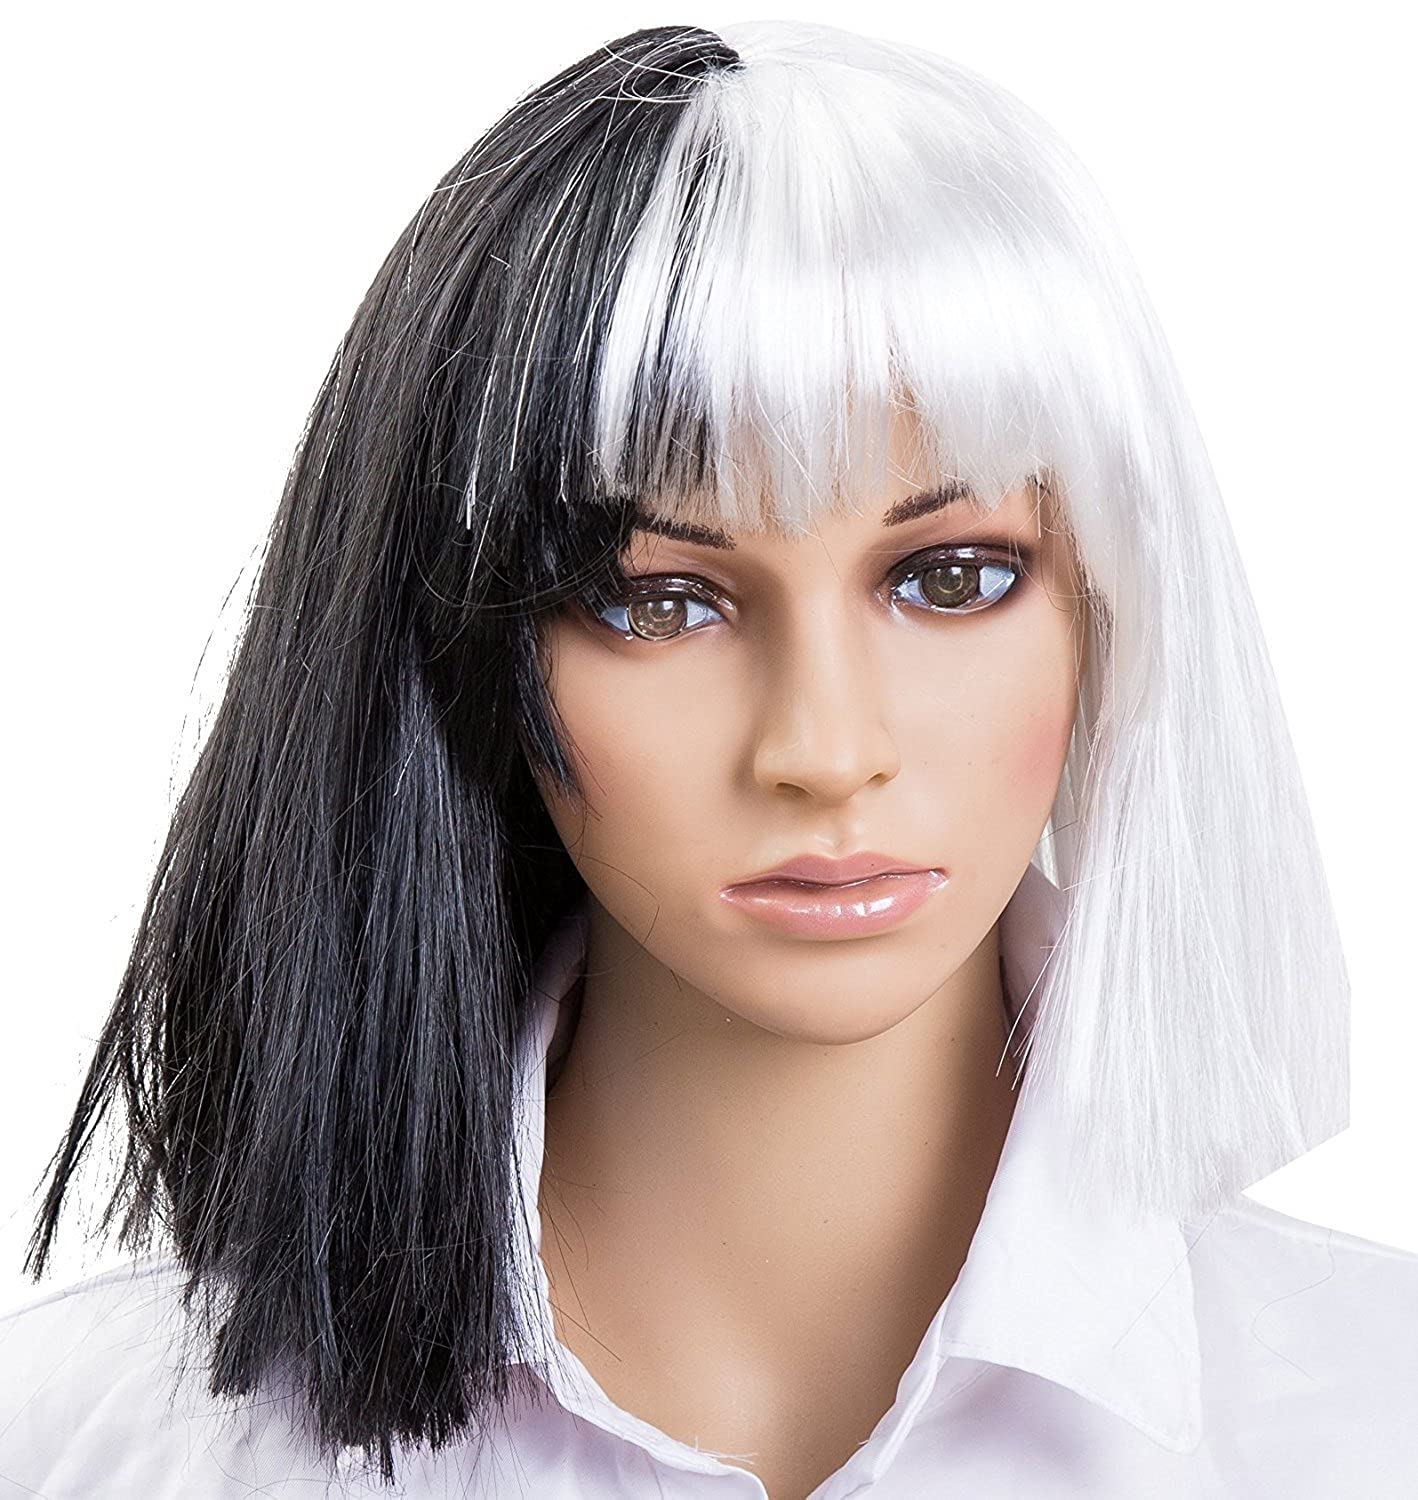 1 BFD Lafies Half Black And Half white Deluxe Evil Cruella Deville Mid Length Bob Wig, Ideal For Haloween Fancy Dress Wig, One Size Fits All.